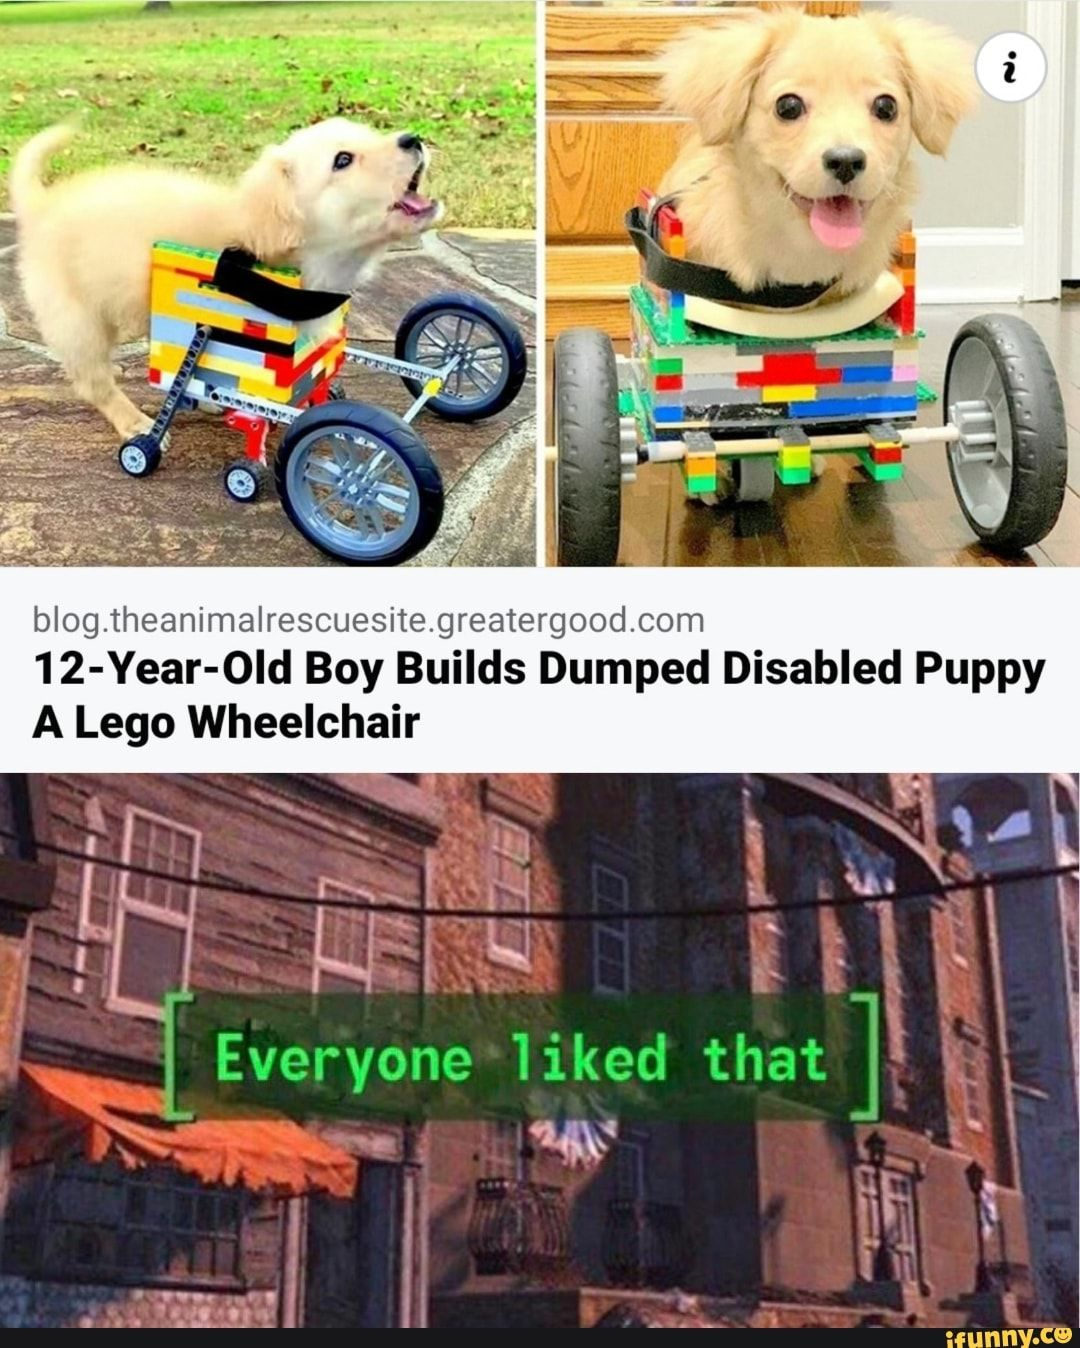 Blog Theanimalrescuesite Greatergood Com 12 Year Old Boy Builds Dumped Disabled Puppy A Lego Wheelchair Ifunny 12 Year Old Boy 12 Year Old Old Boys